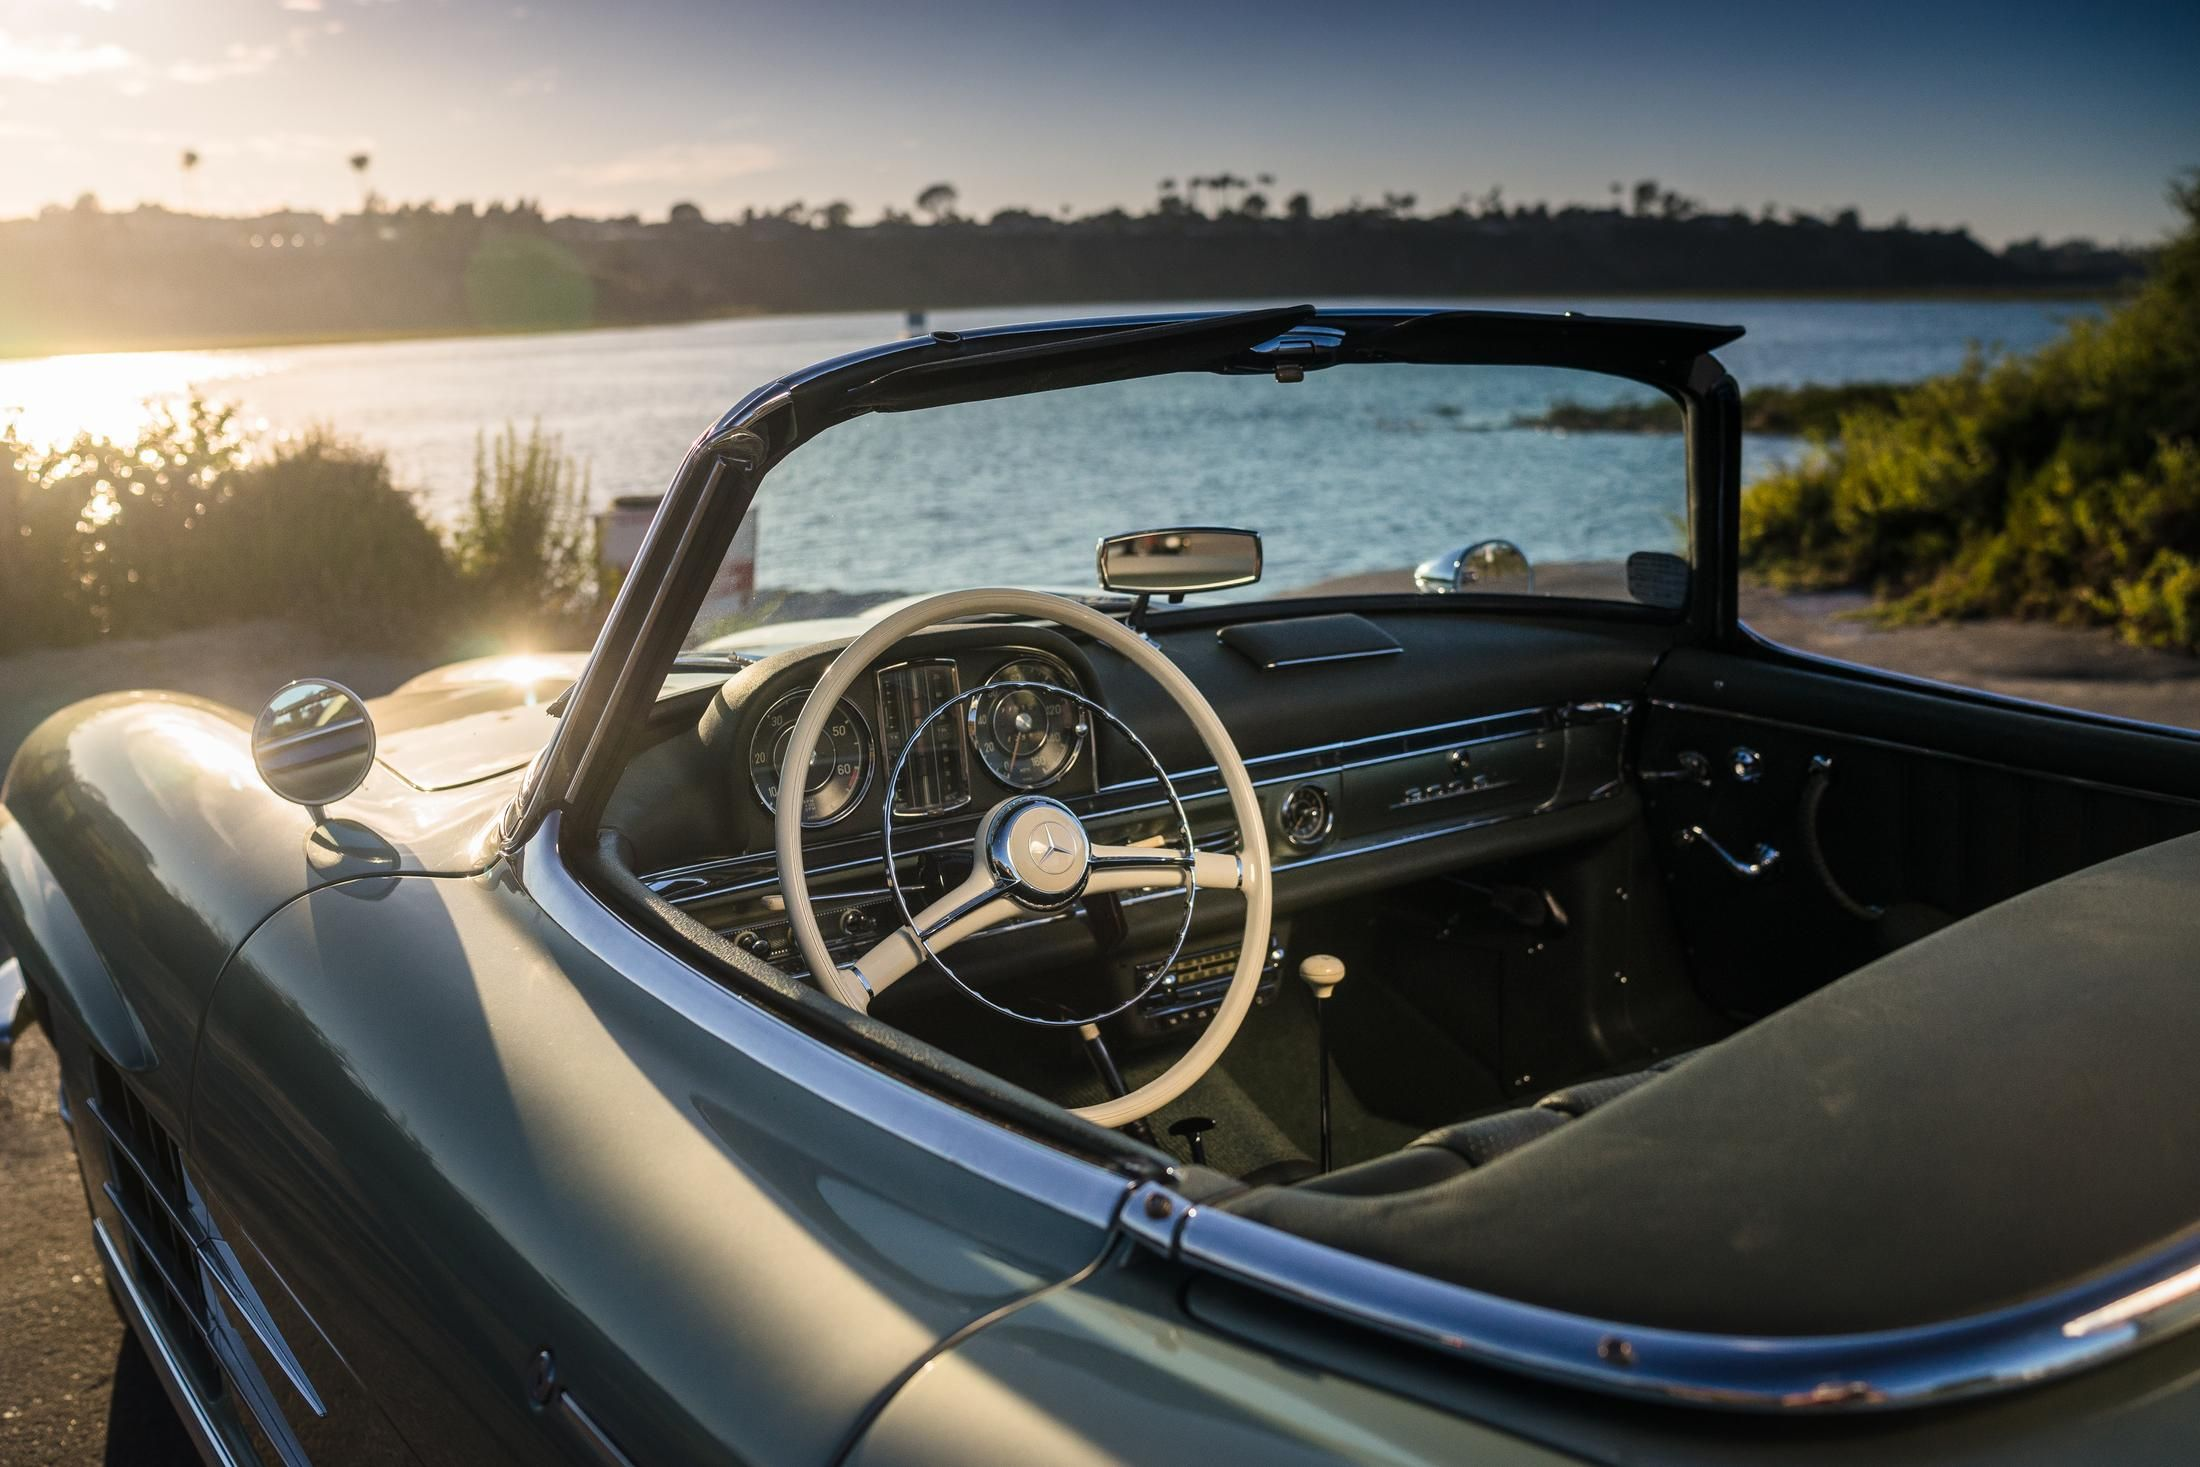 This timeless mercedesbenz roadster could be yours green coat